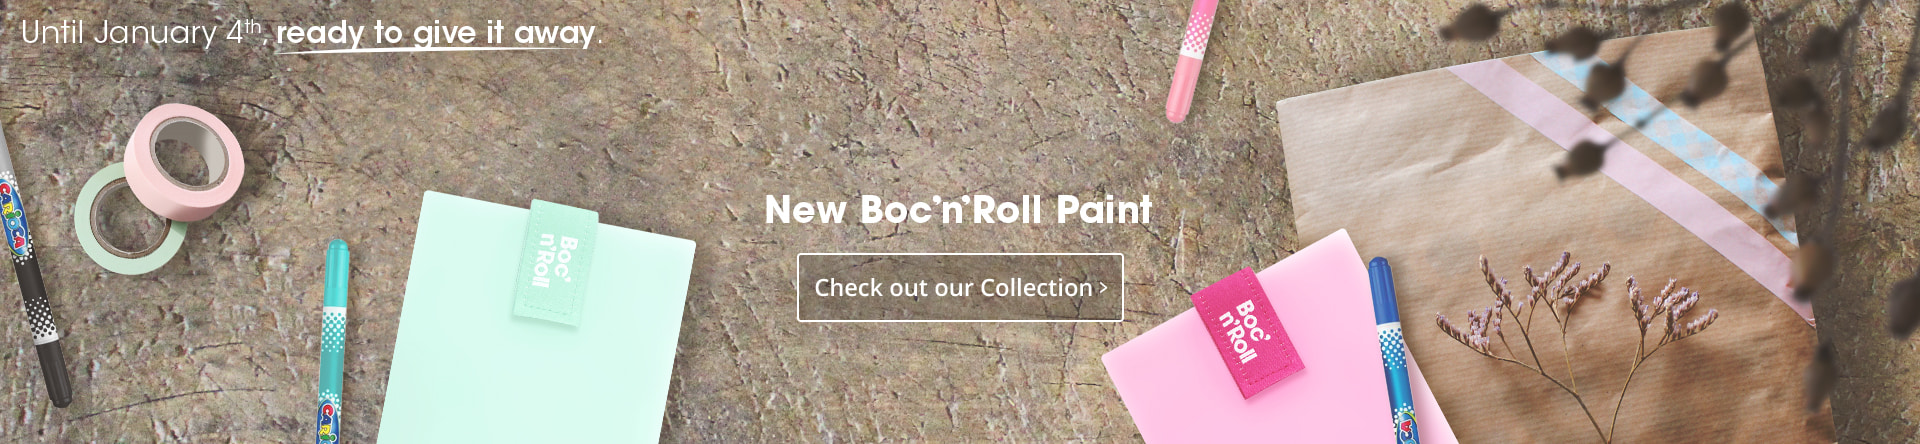 New Paint Collection